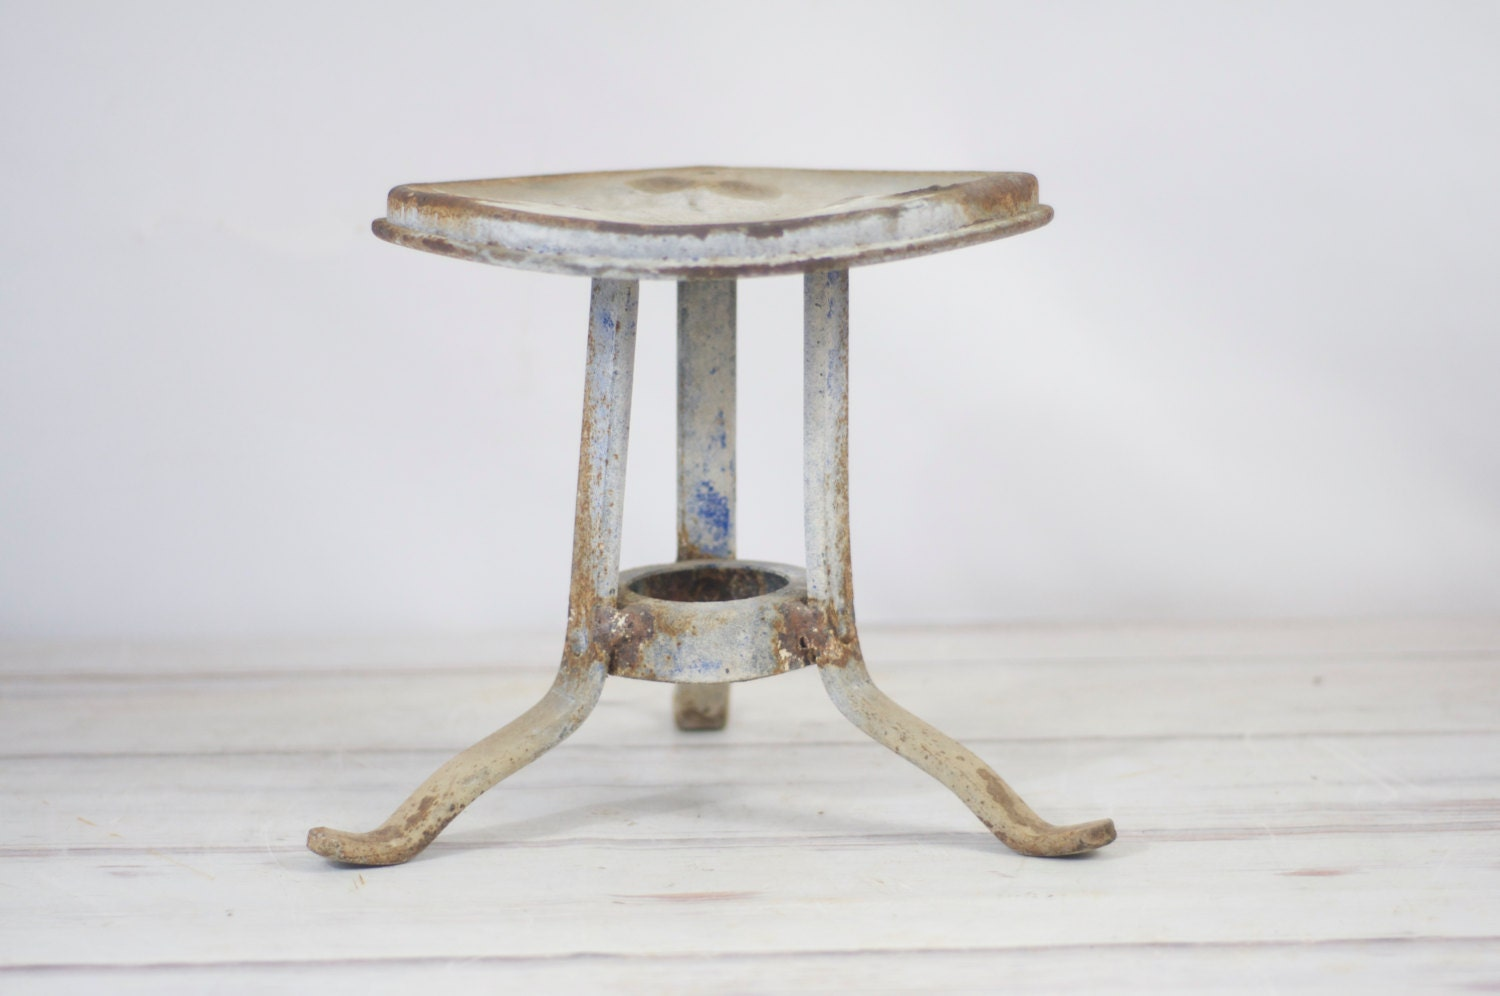 Antique Iron Stool Bing Images